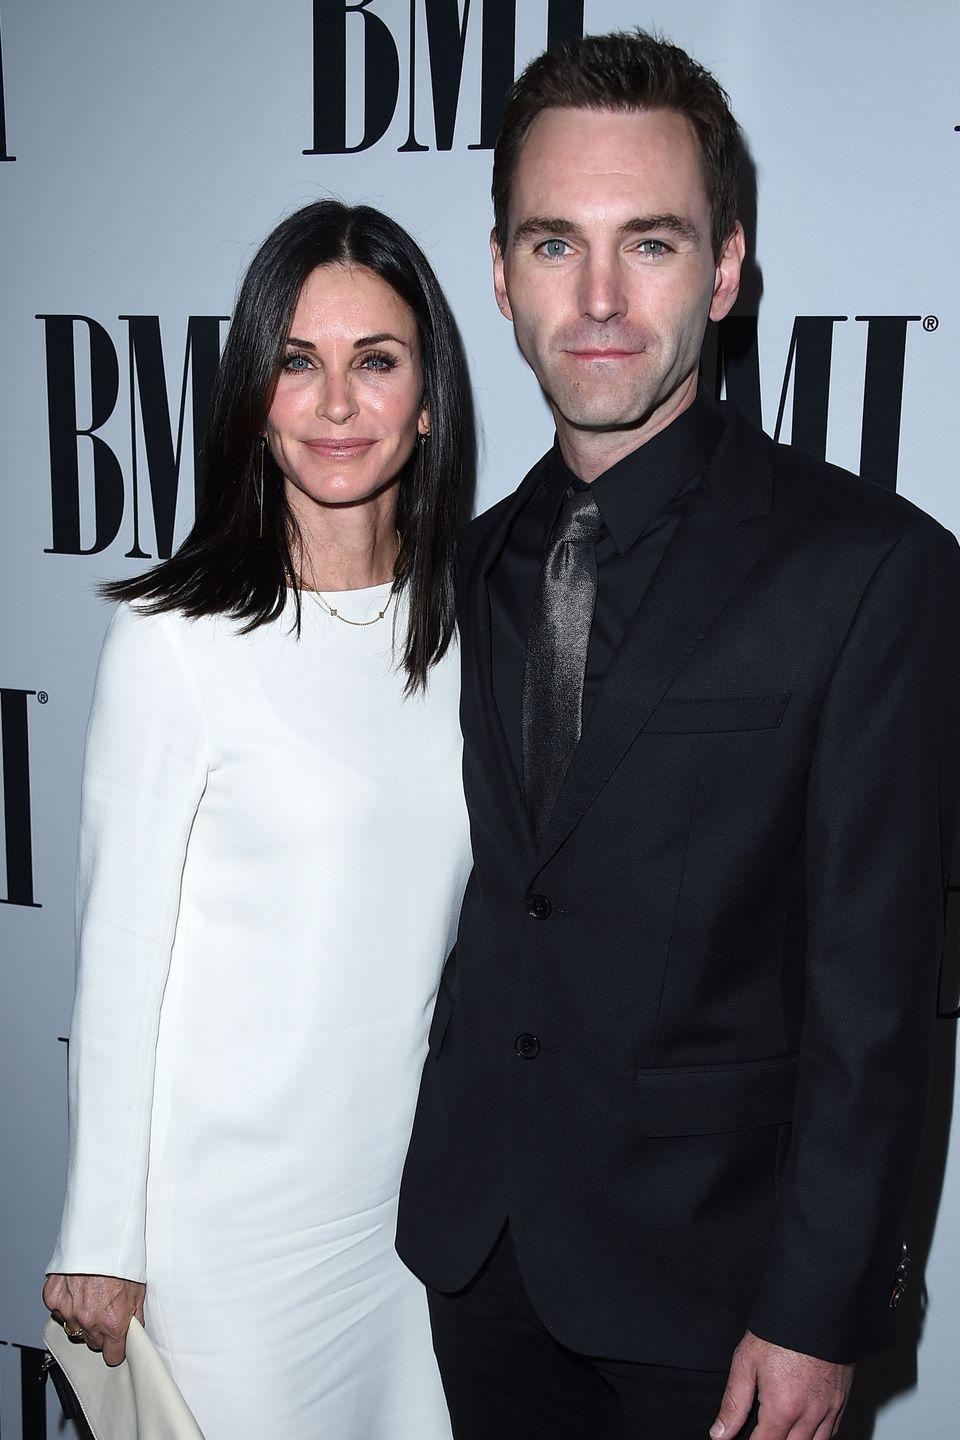 """<p>From their sparkling blue eyes to their matching angular faces, the former <em><span class=""""redactor-unlink"""">Friends</span></em><span class=""""redactor-unlink""""> star</span> and her Irish longtime partner could practically be related. (Except, ew, gross.)</p>"""